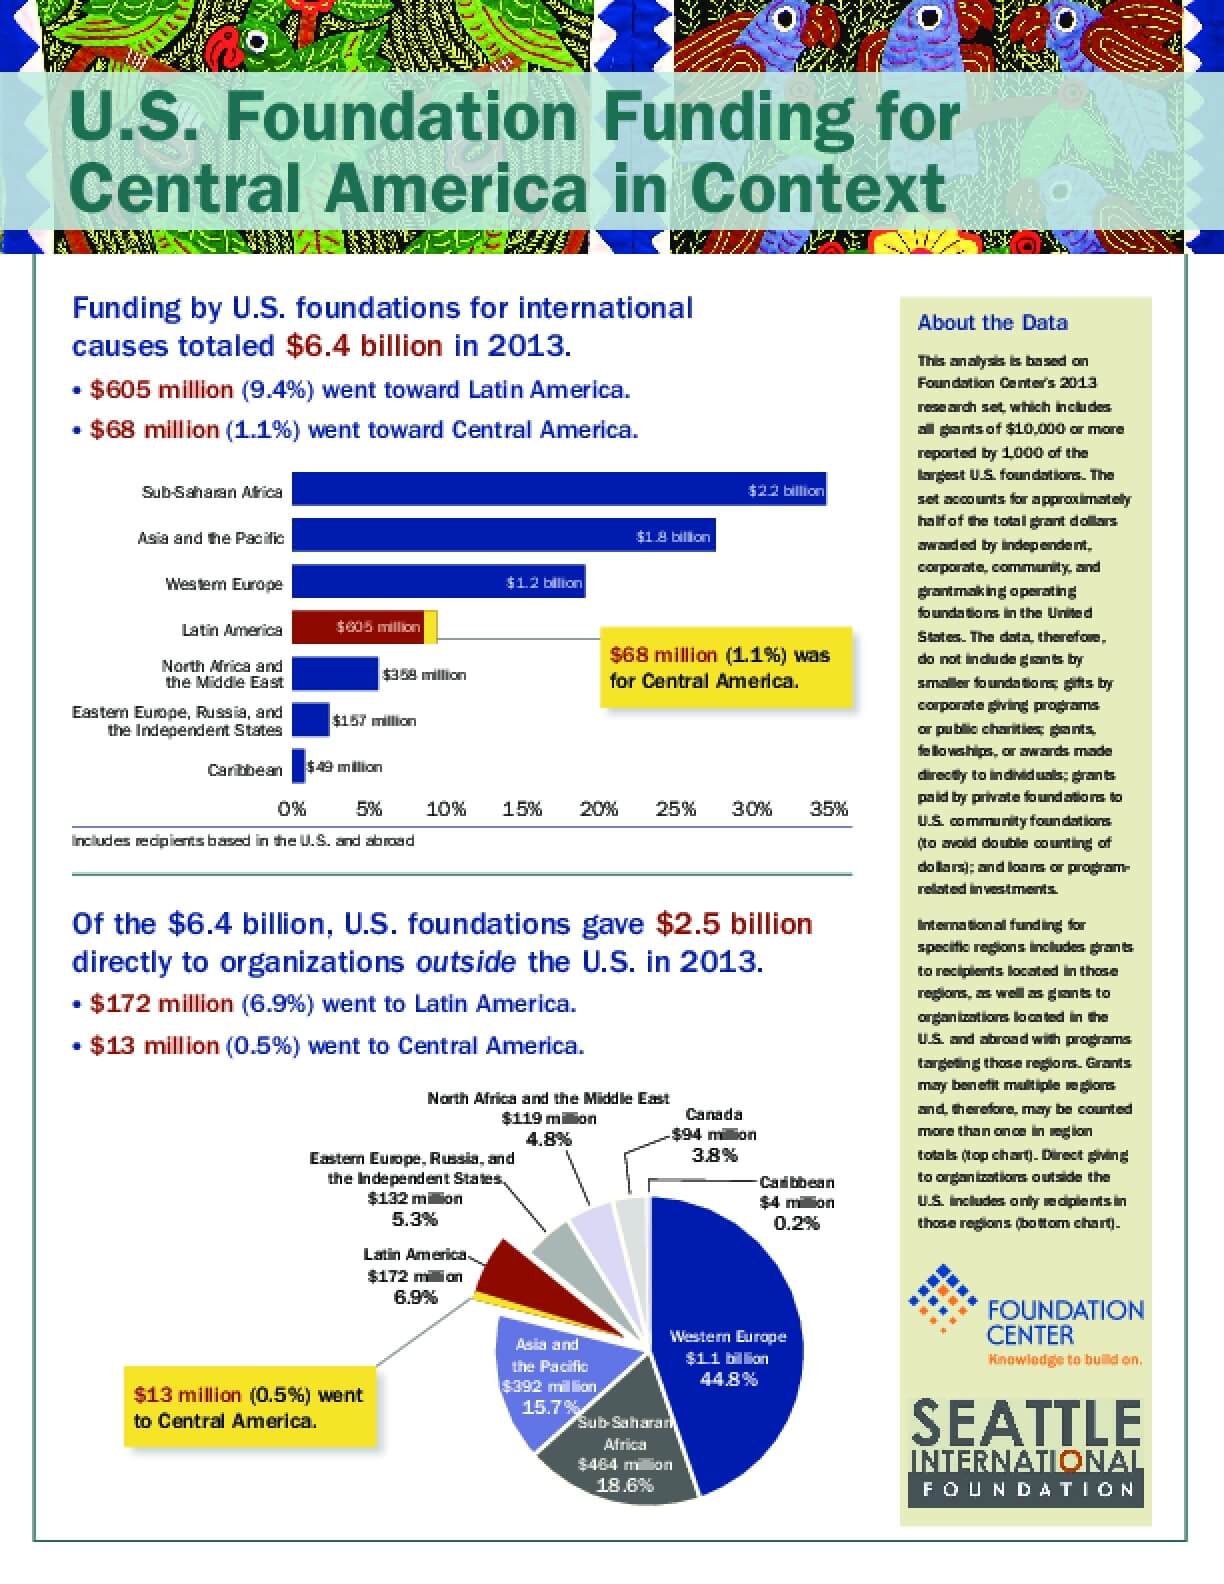 U.S. Foundation Funding for Central America in Context